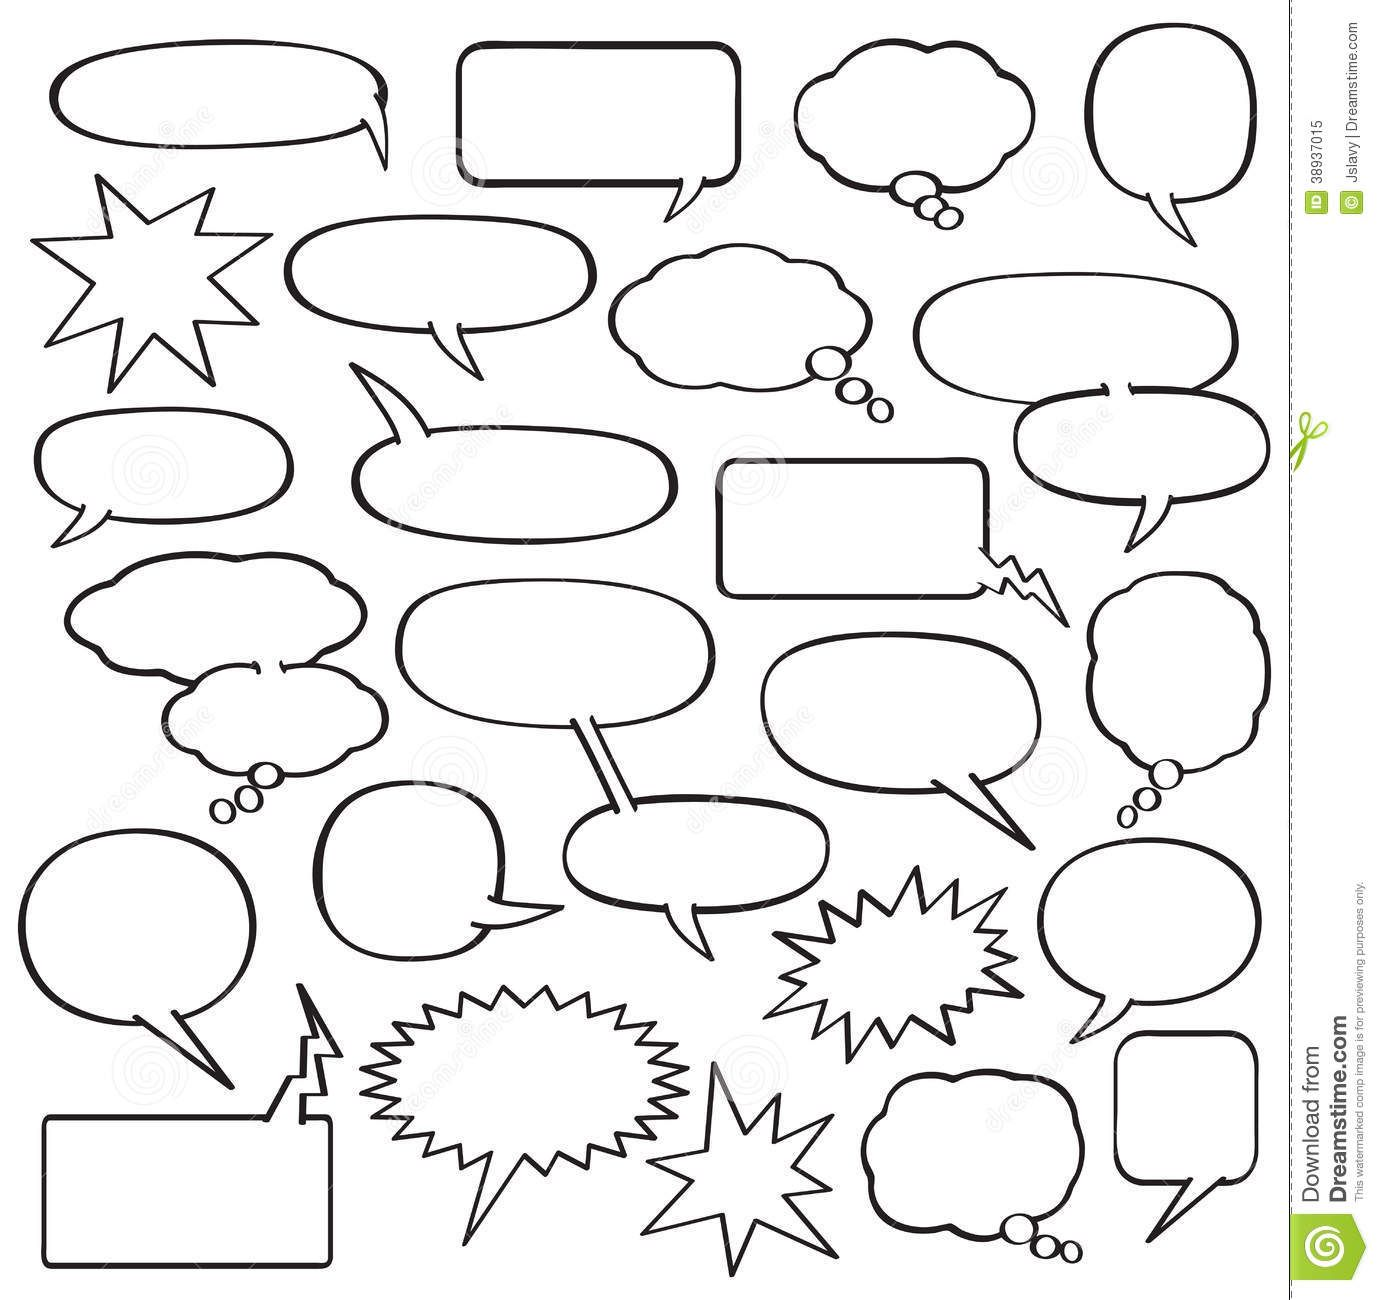 Blank comic strip speech bubbles template school for Printable blank comic strip template for kids